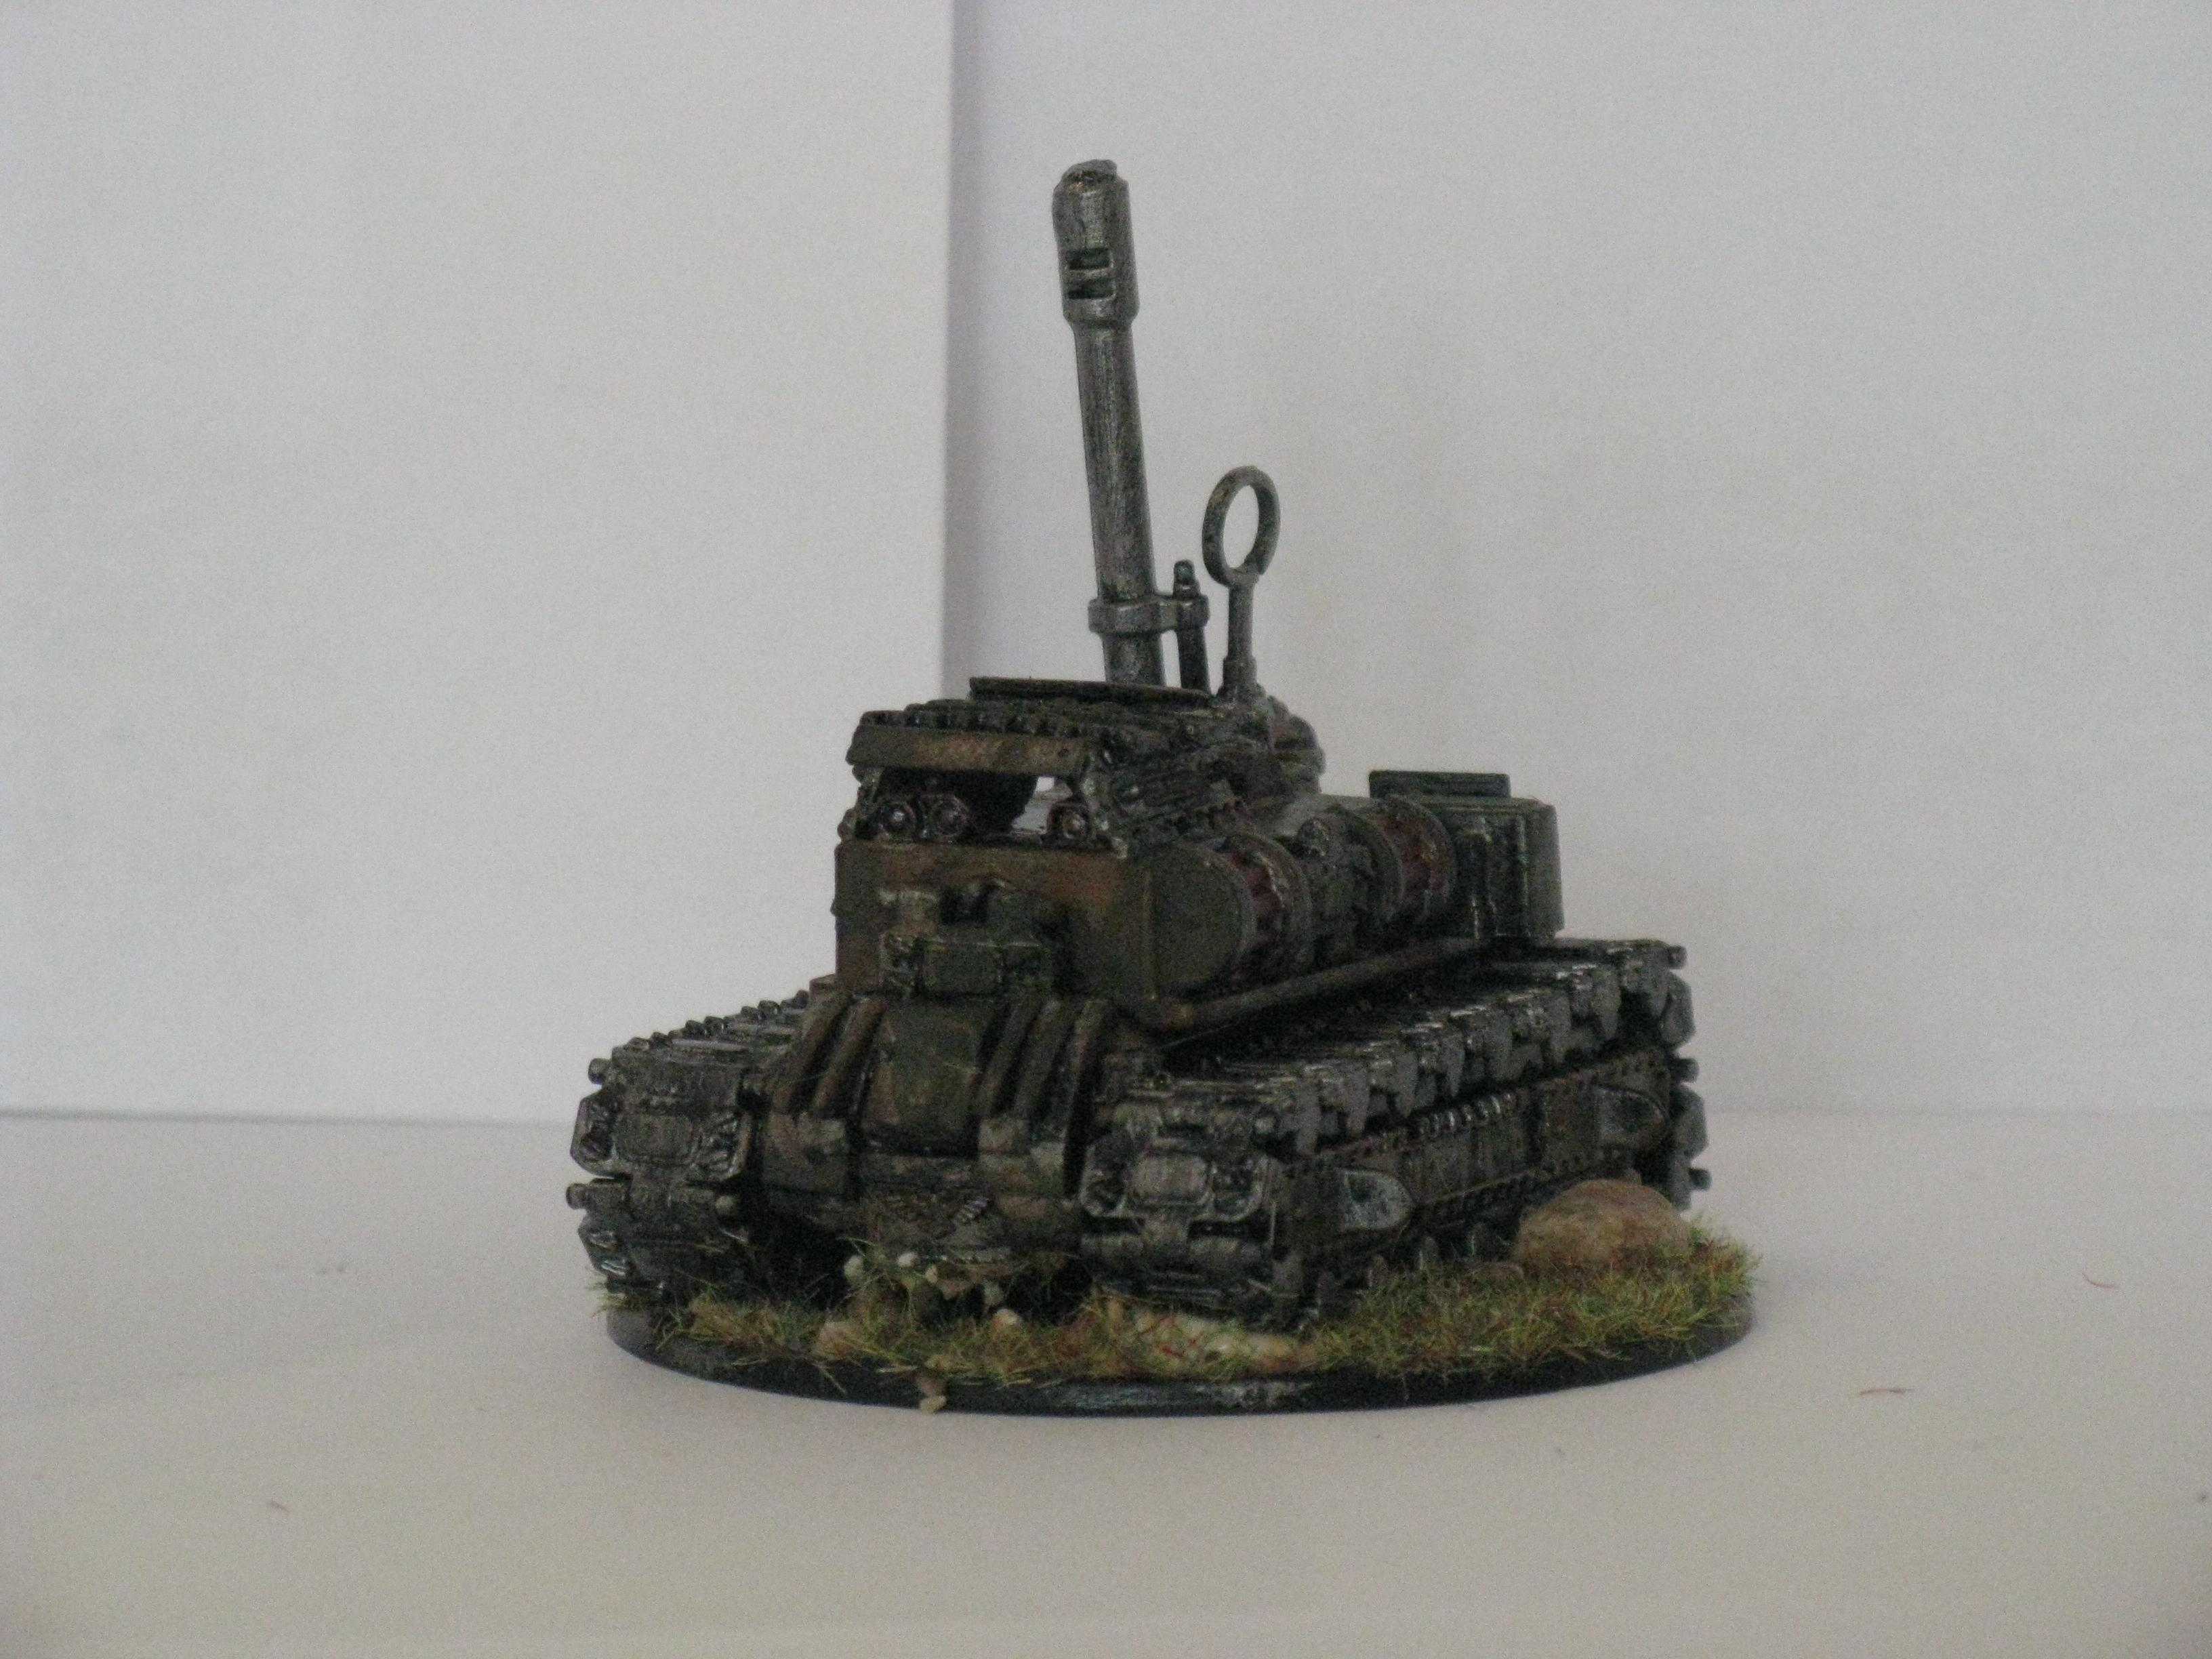 Cyclops, Guard, Here Is My Killdozer I Made After Playing To Much Coh!!! My Favorite Thing About This Is The Protected Optics On The Front!!!, Killdozer, Orks